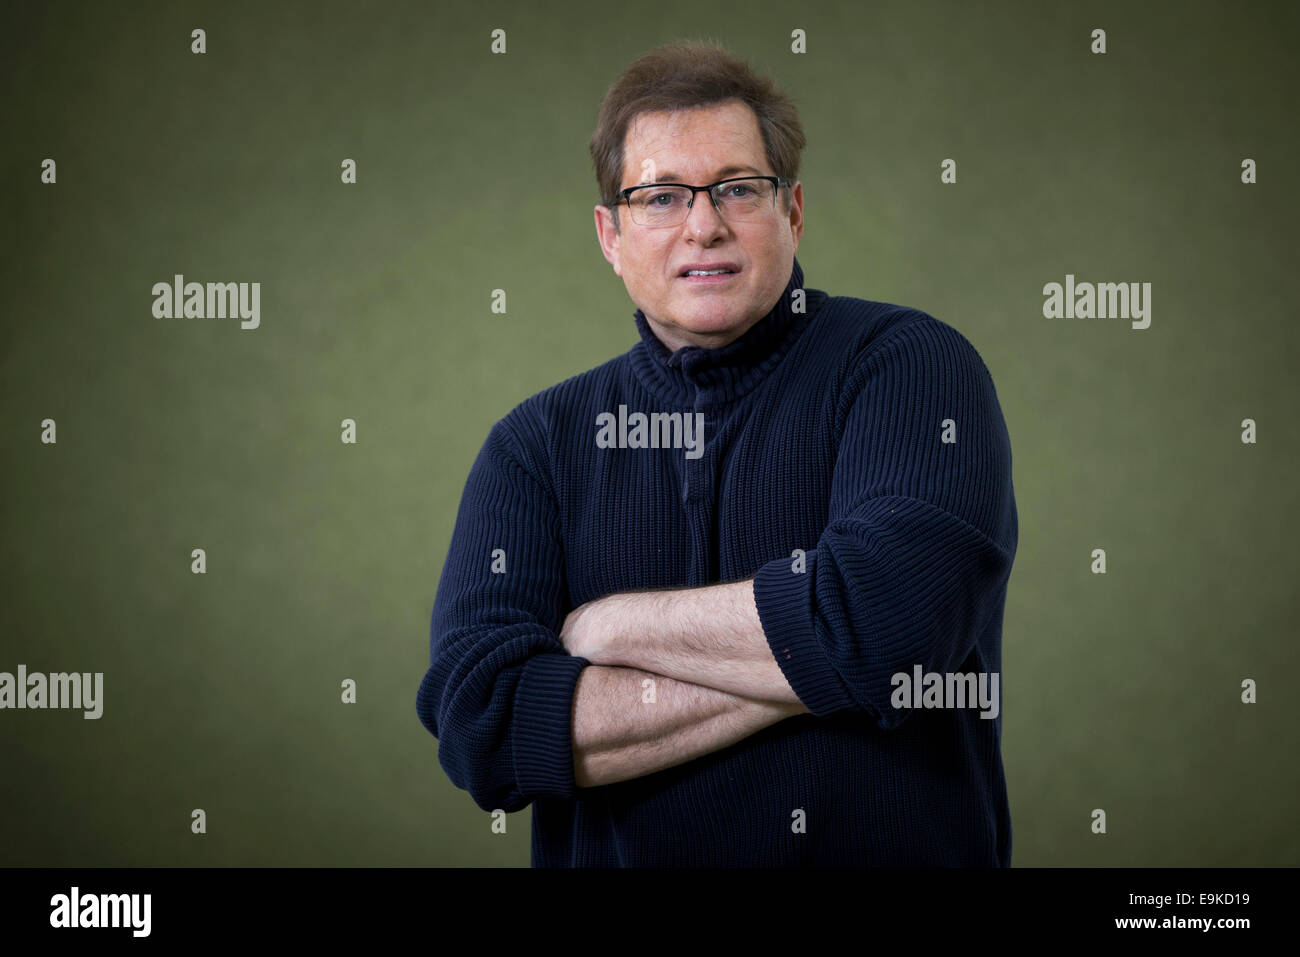 Singer, cabaret performer and author Craig Pomranz appears at the Edinburgh International Book Festival. - Stock Image